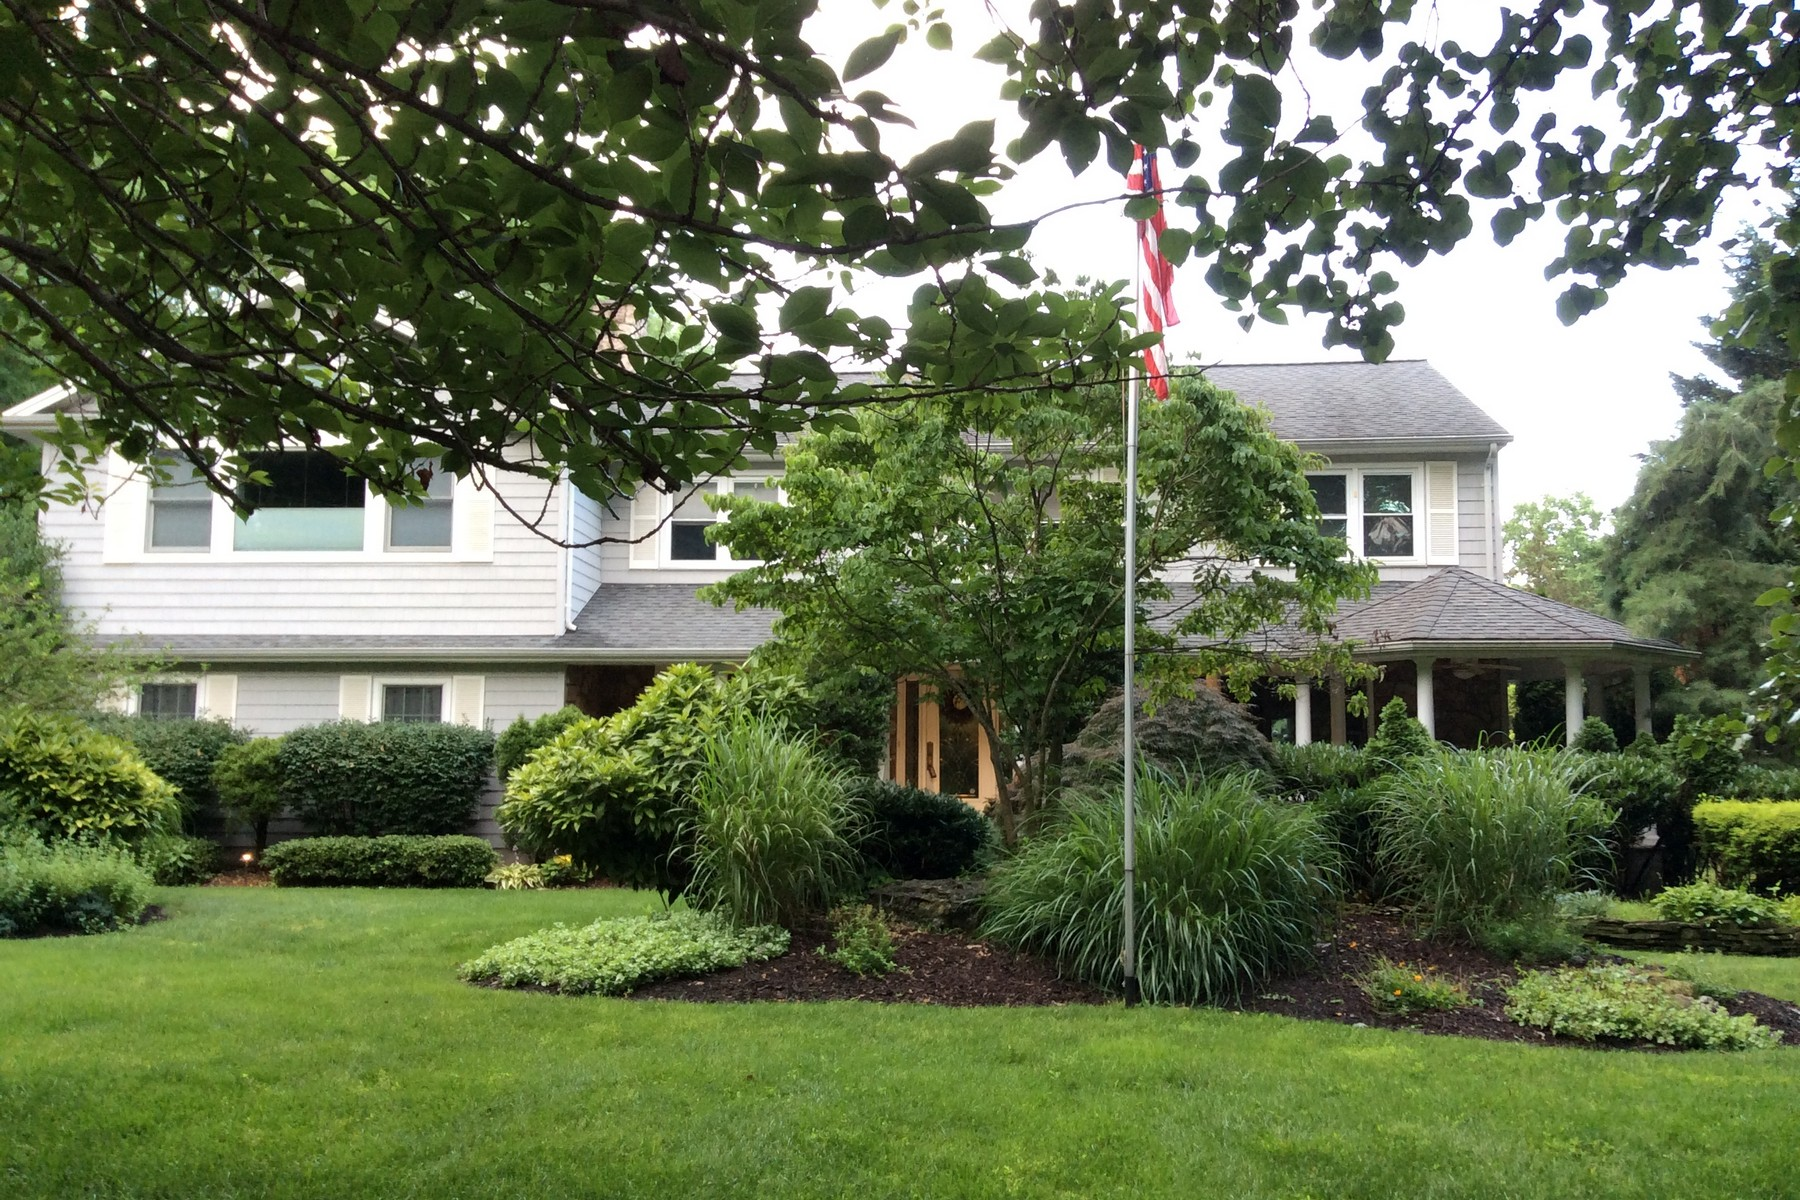 Single Family Home for Sale at Serenity describes this Colonial location 183 Green Oak Blvd, Middletown, New Jersey 07748 United States